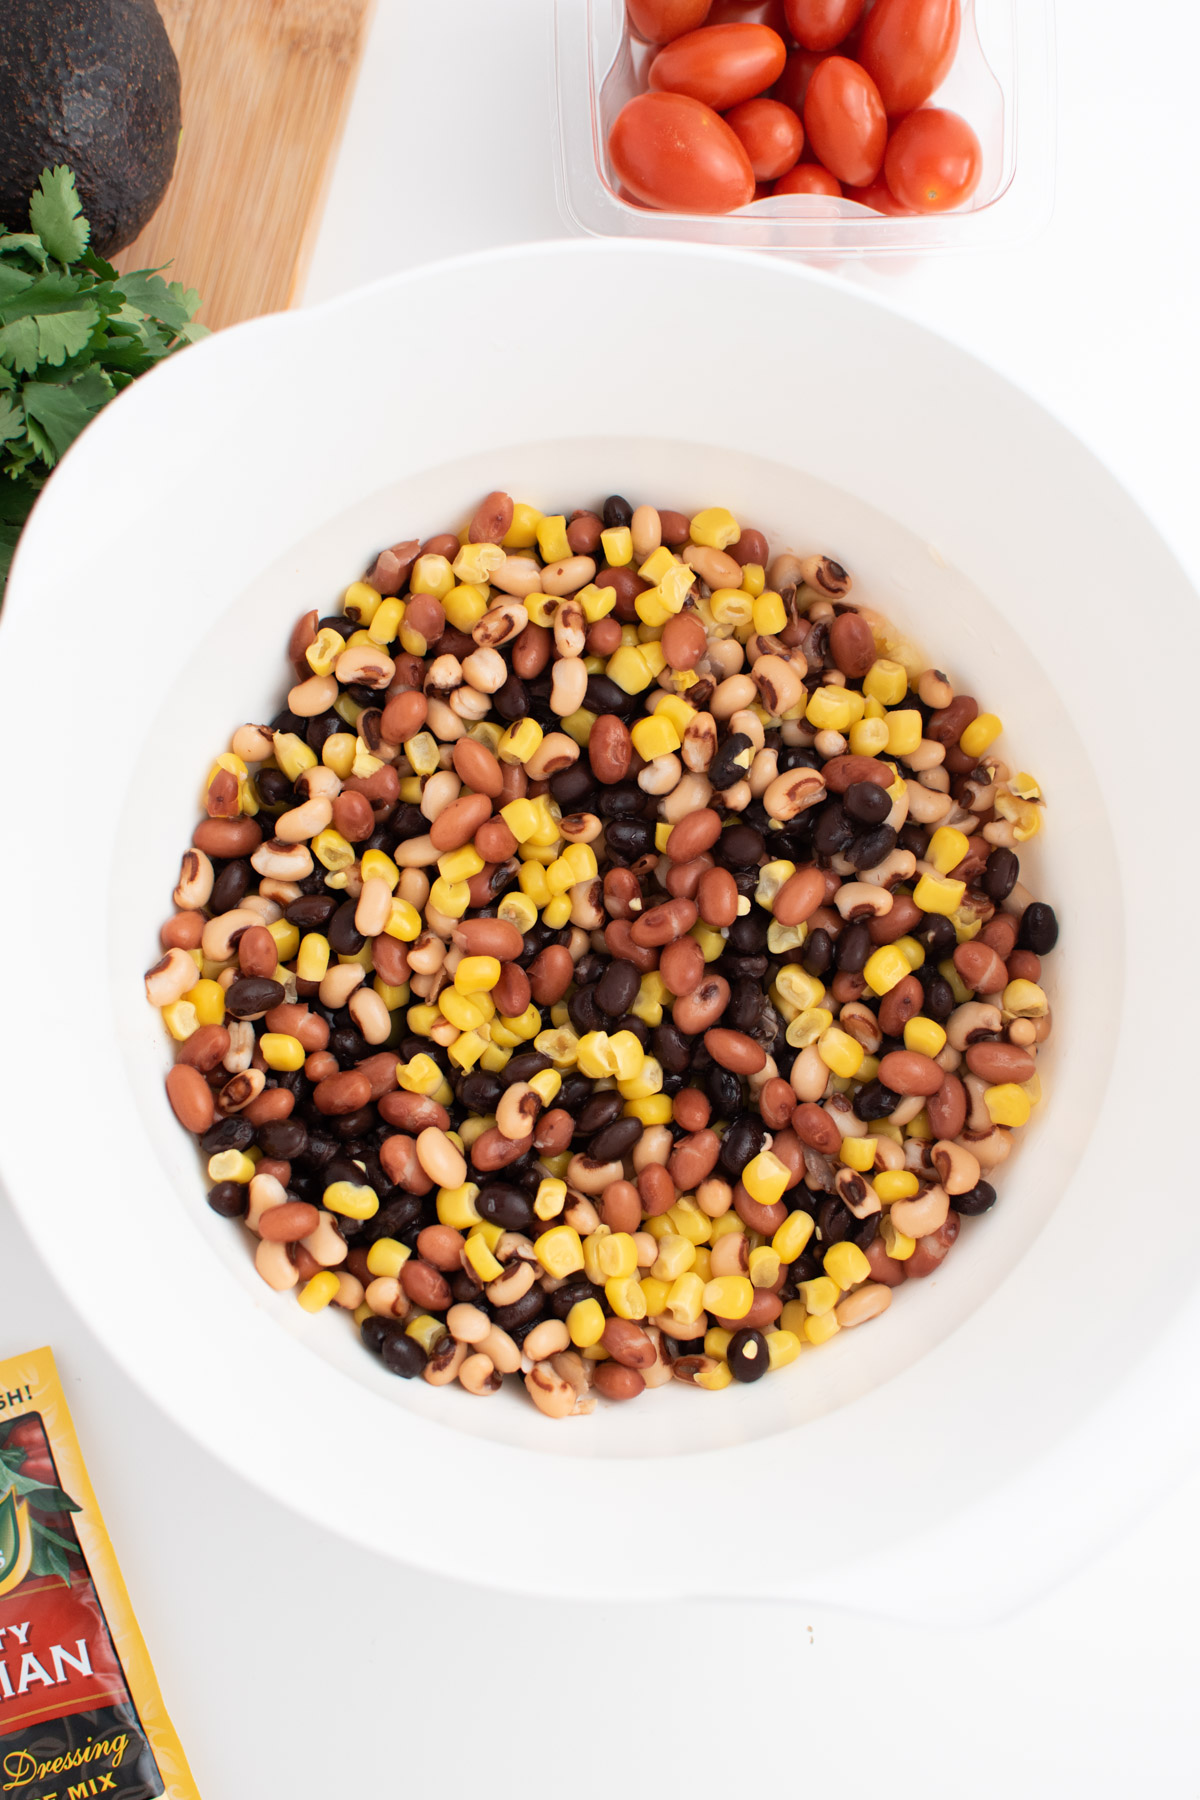 Rinsed beans and corn in large white mixing bowl to make cowboy party dip.